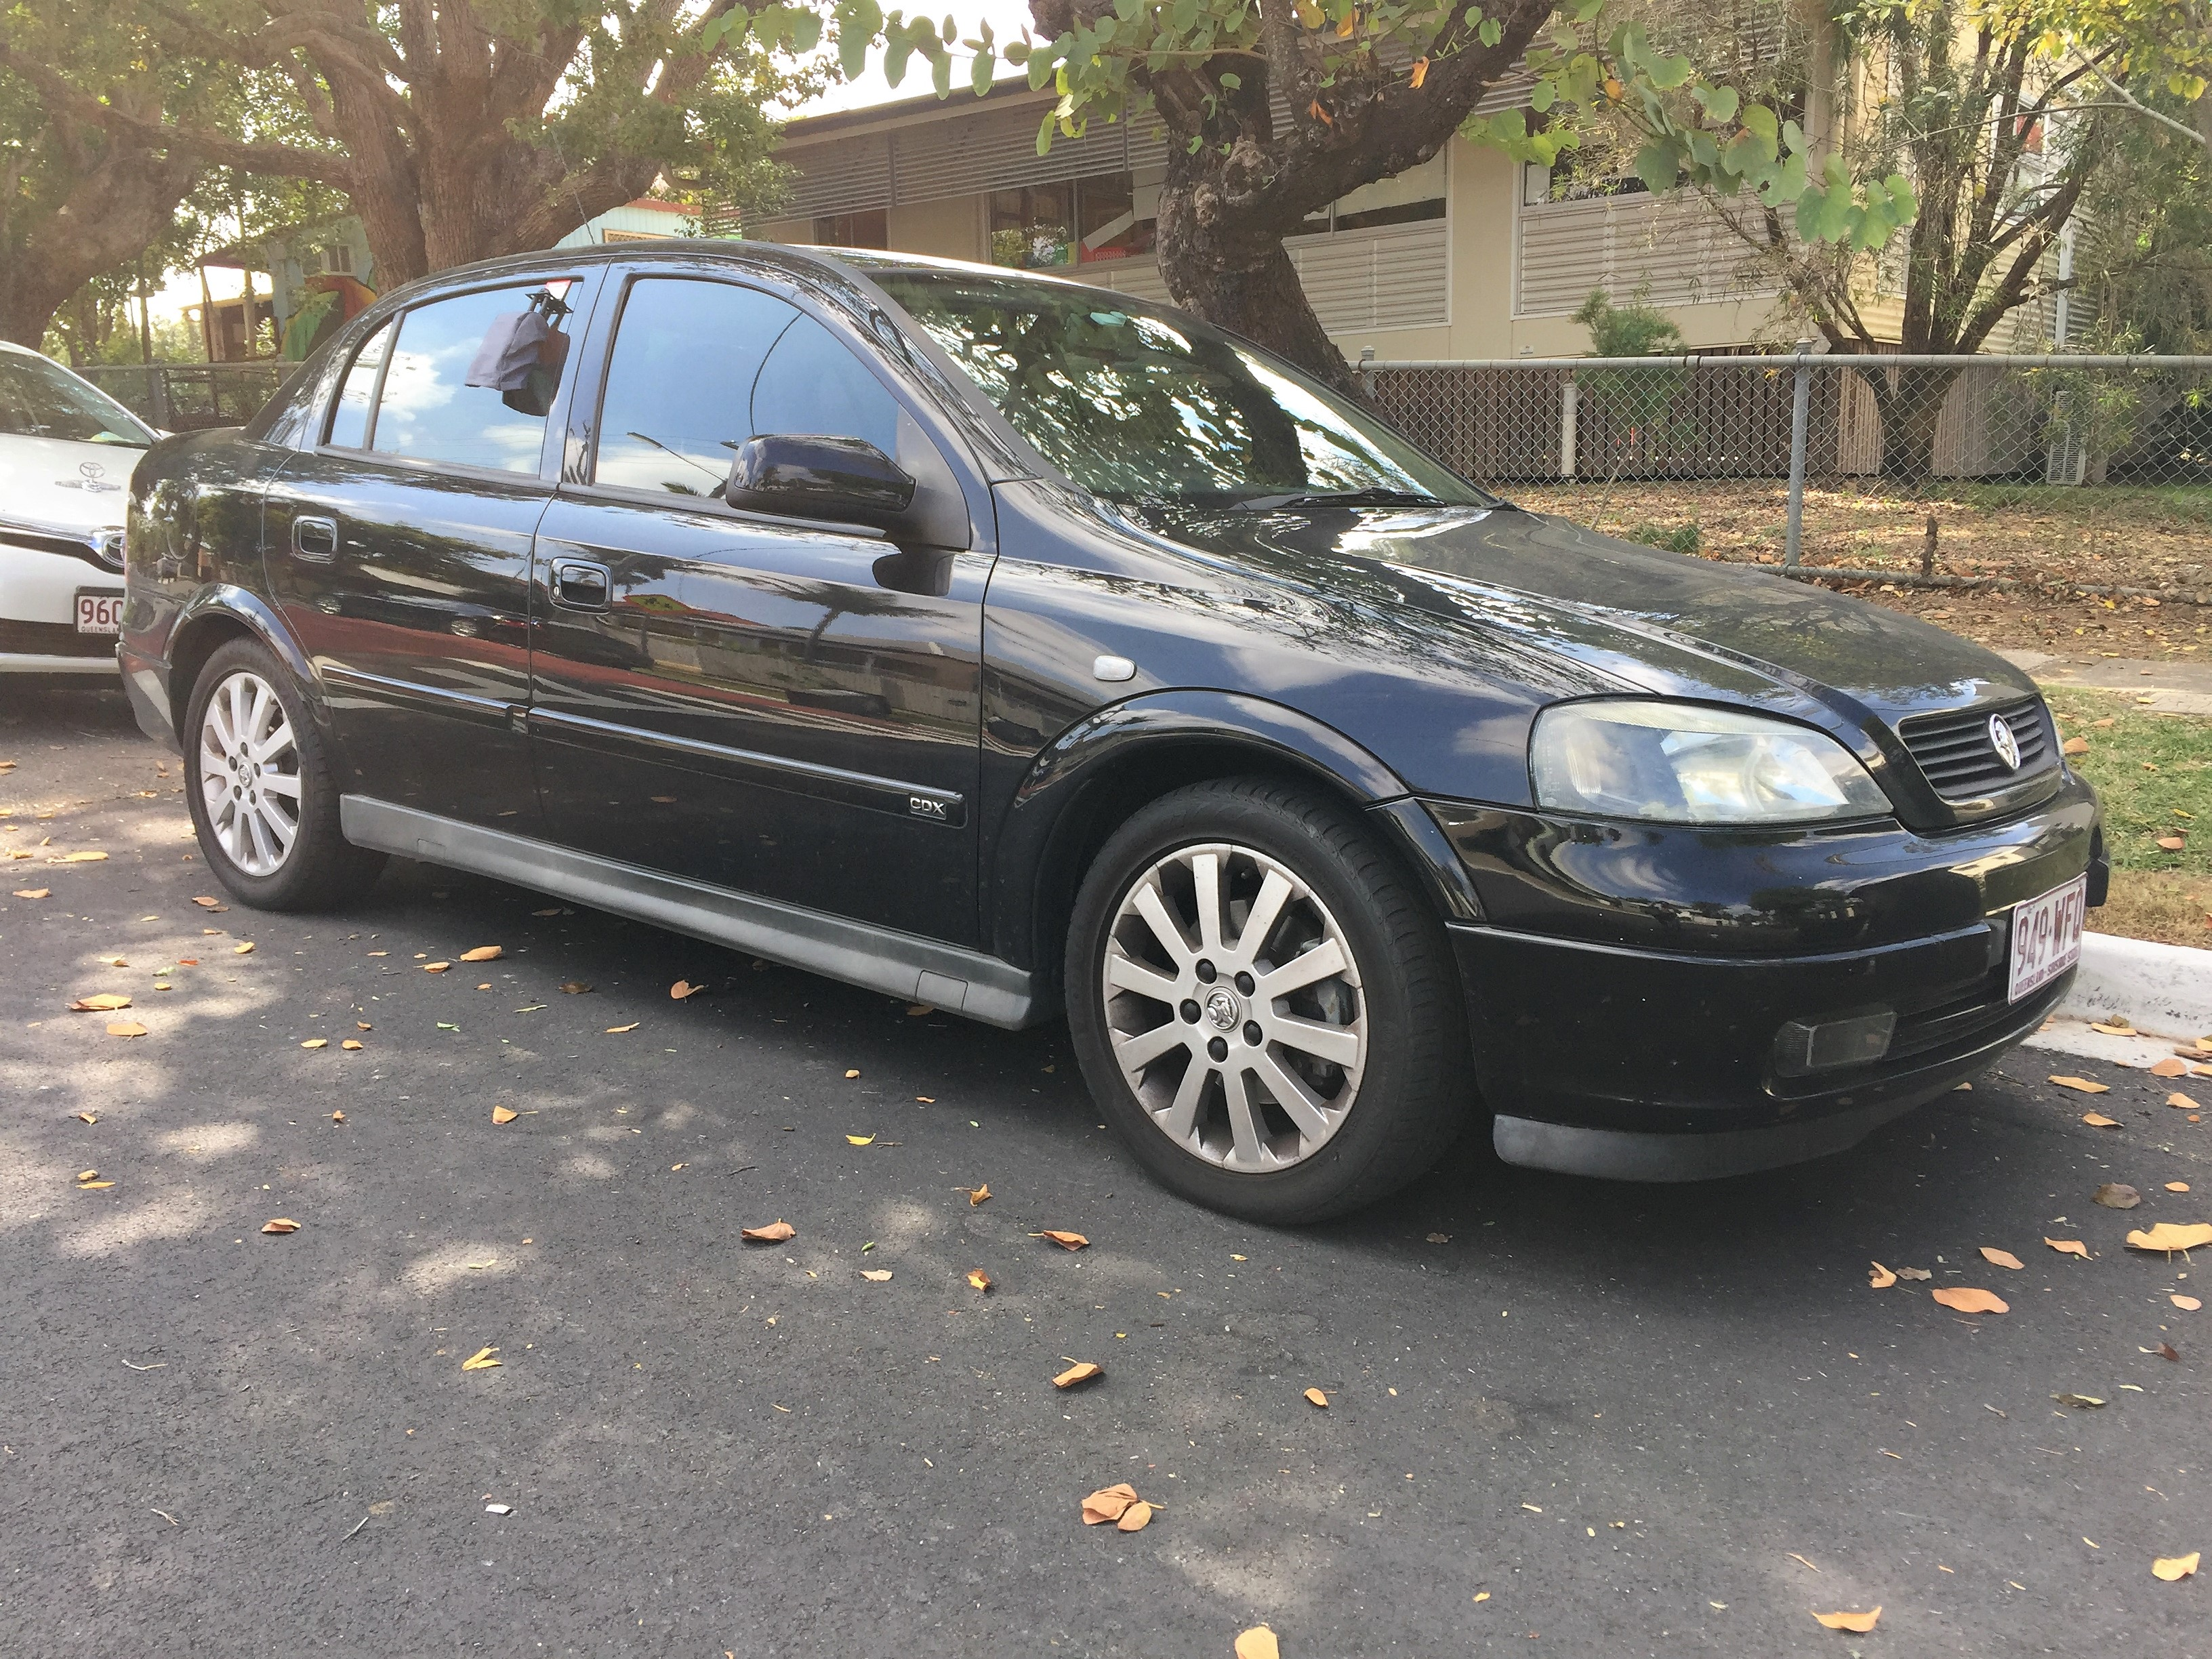 Picture of Renee's 2004 Holden Astra